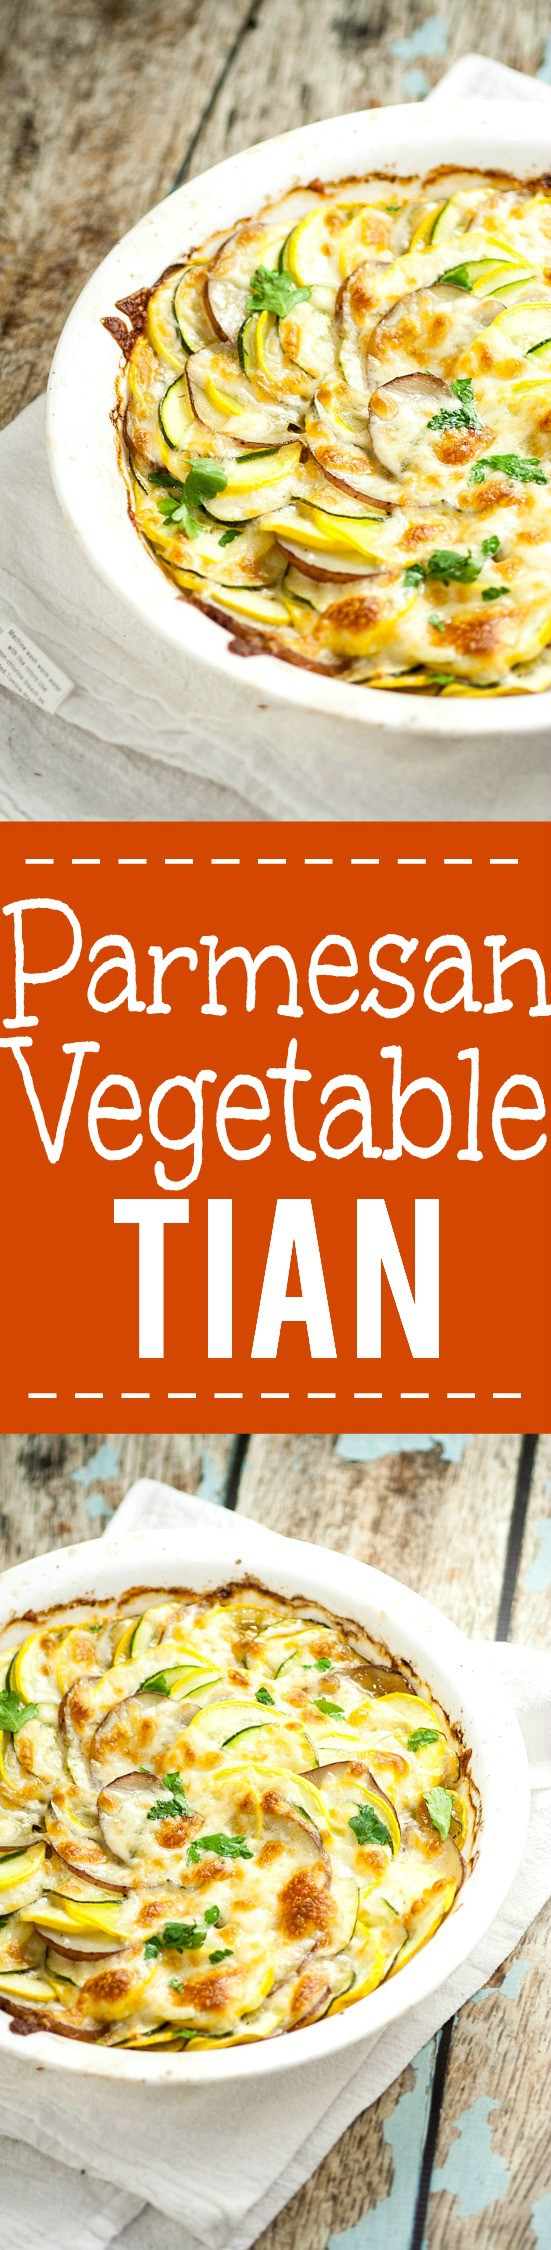 Parmesan Vegetable Tian Recipe - A classic and a favorite, this Parmesan Vegetable Tian recipe uses Summer vegetables, onions, and garlic baked together in the oven and topped with melted, golden Parmesan cheese for an amazing easy side dish recipe that's perfect for Summer and guests.  Yum! Seriously, my favorite.